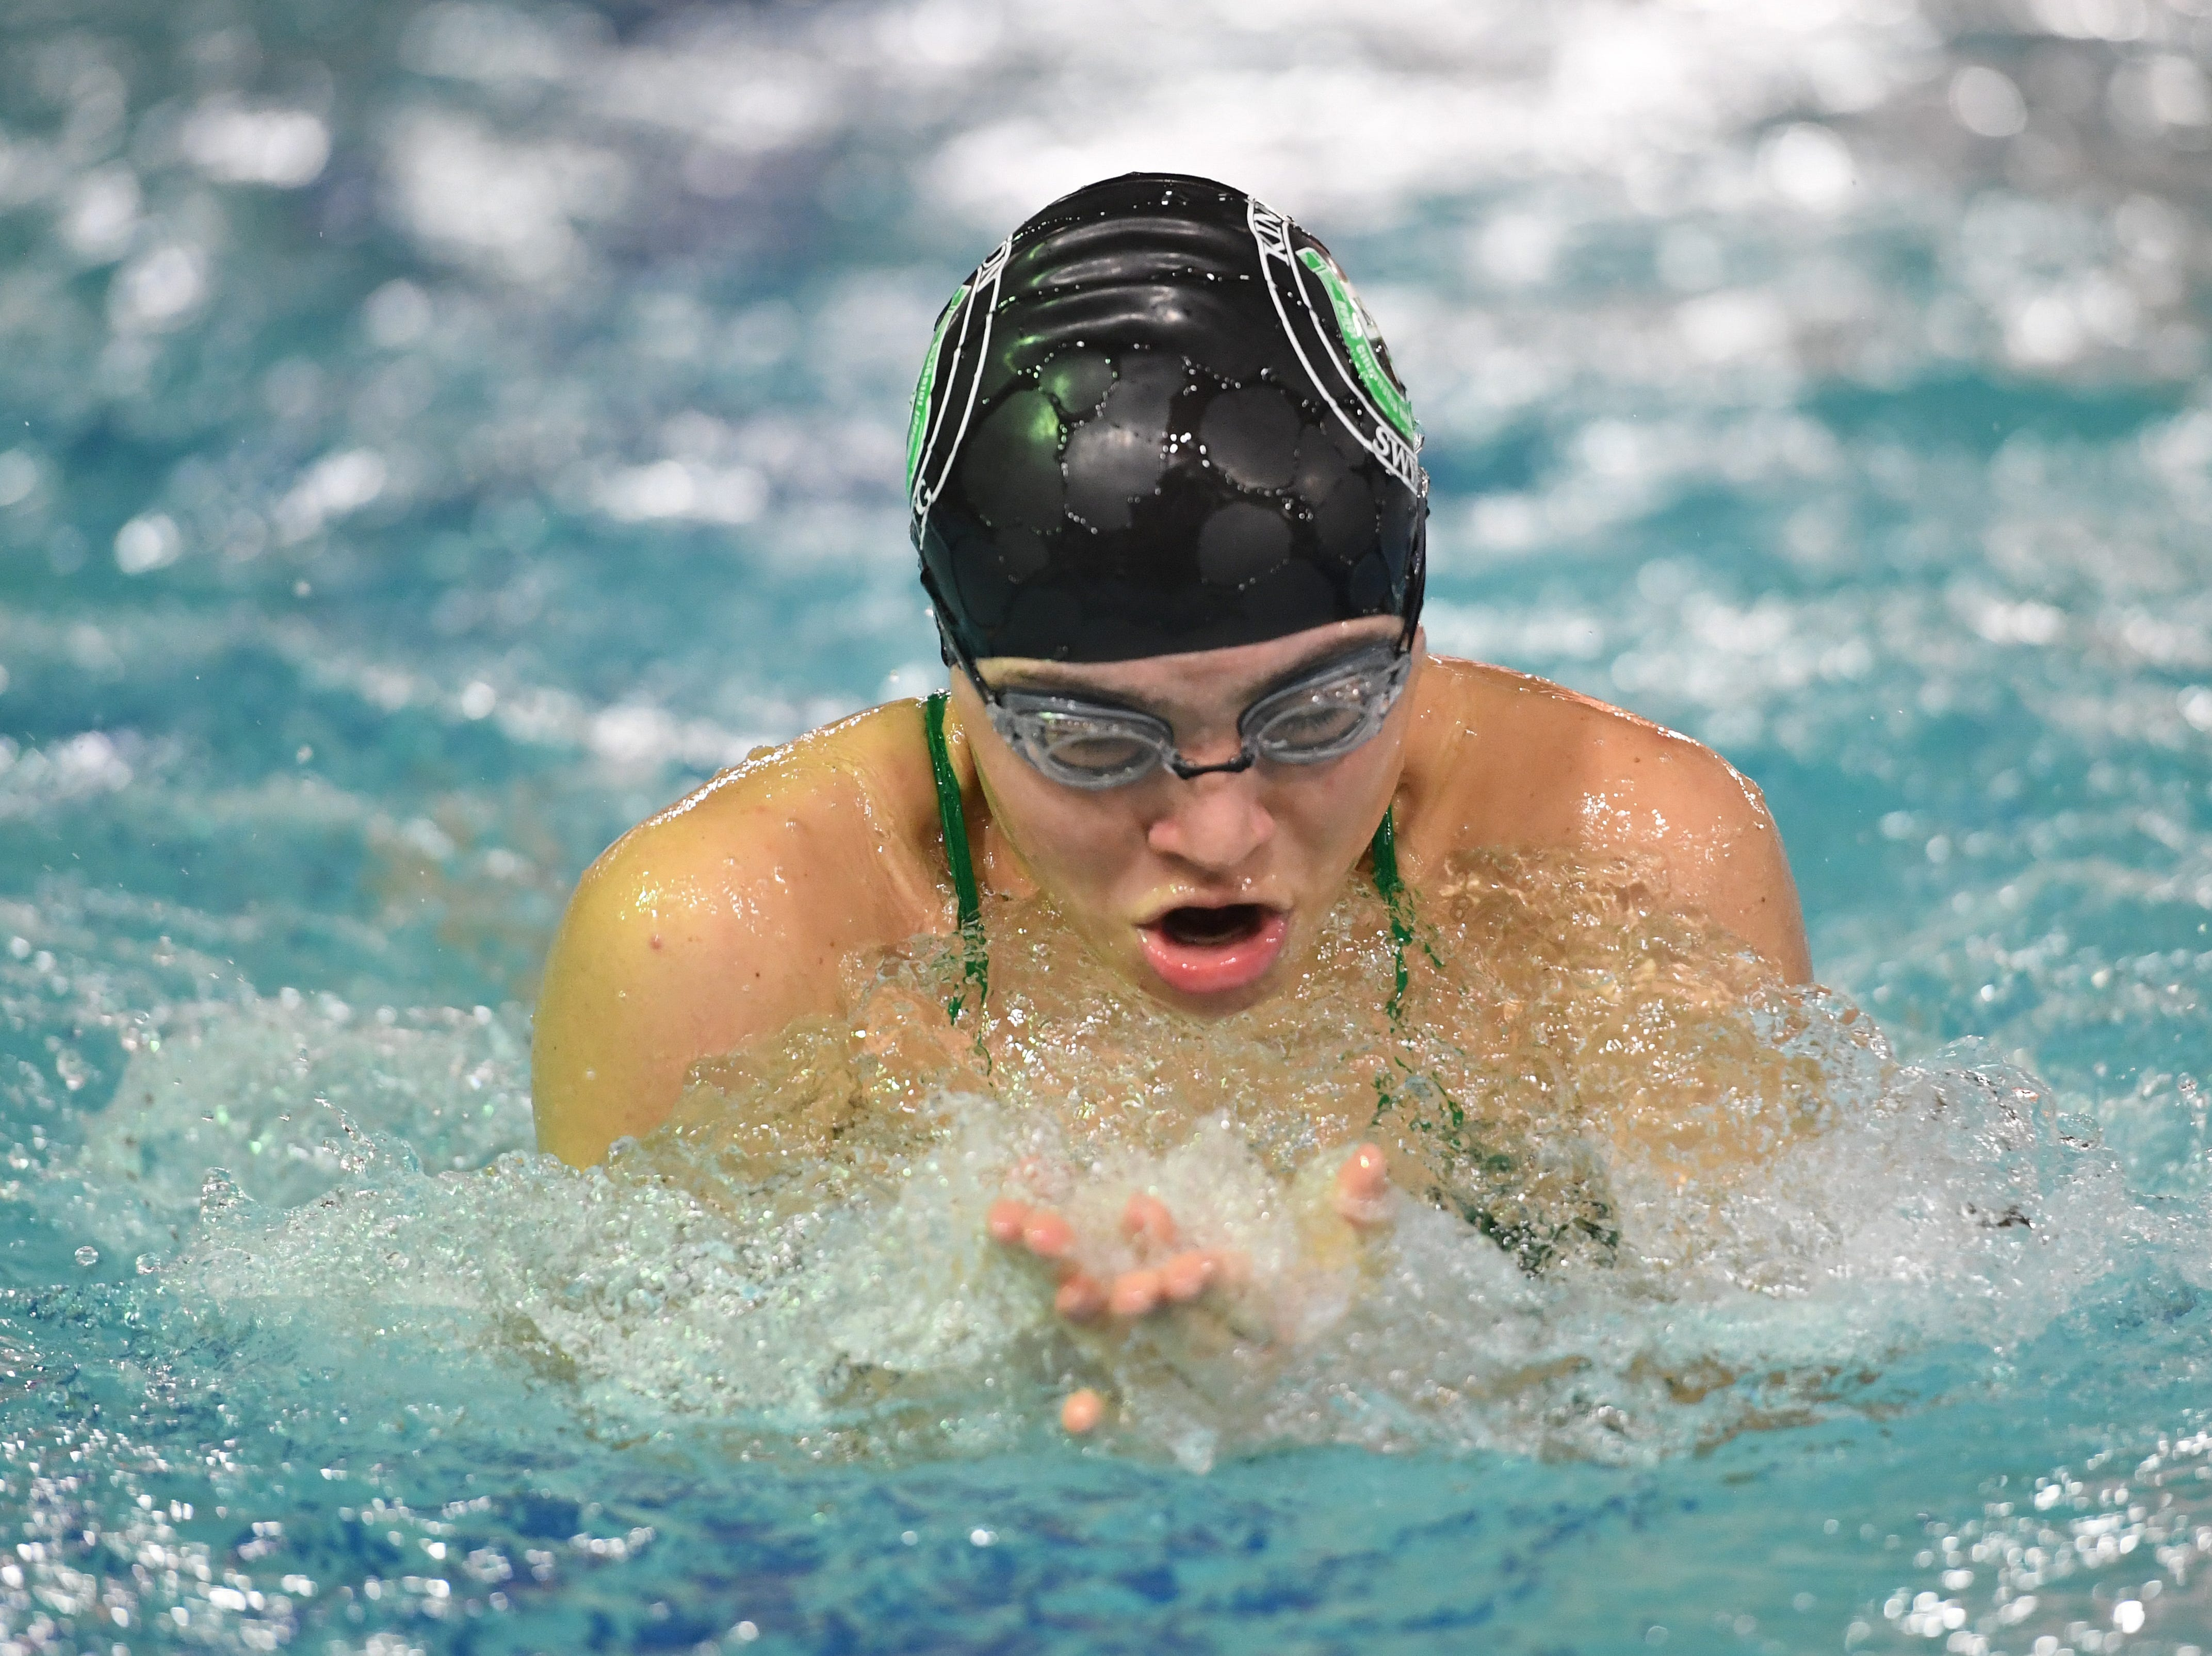 NJSIAA swimming sectional finals: Mountain Lakes vs Kinnelon in North I-C at Passaic County Technical Institute on Friday, February 15, 2019. Sofia Harty, of Kinnelon, in the 100 Breaststroke.